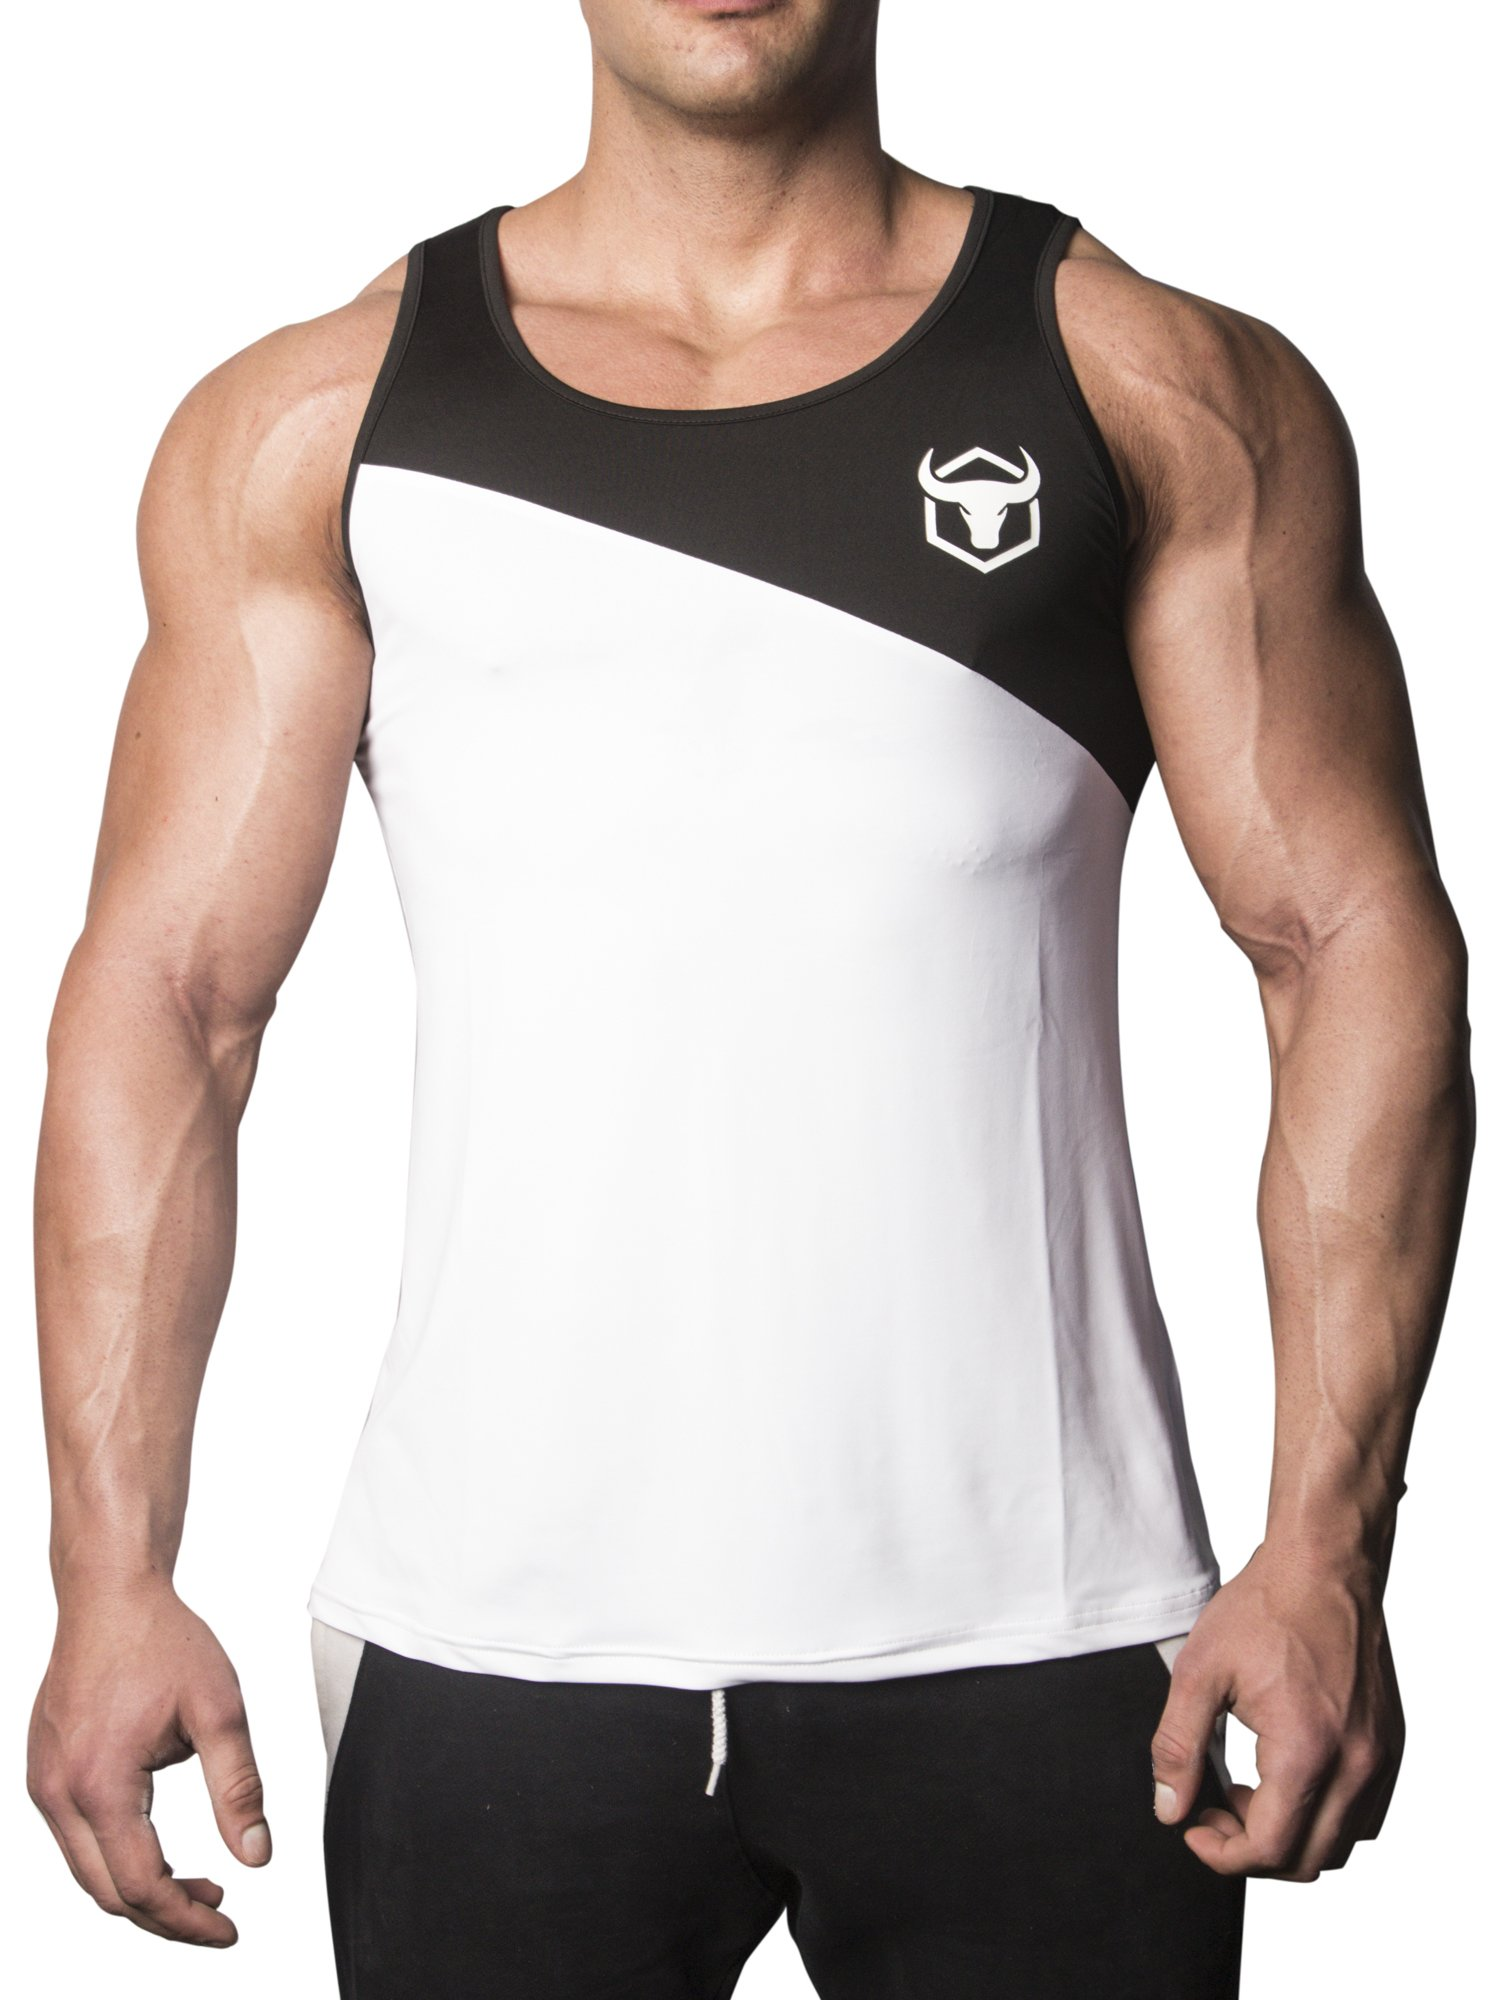 Iron Bull Strength - Tank Top - Performance Series (Large, White/Navy Blue) by Iron Bull Strength